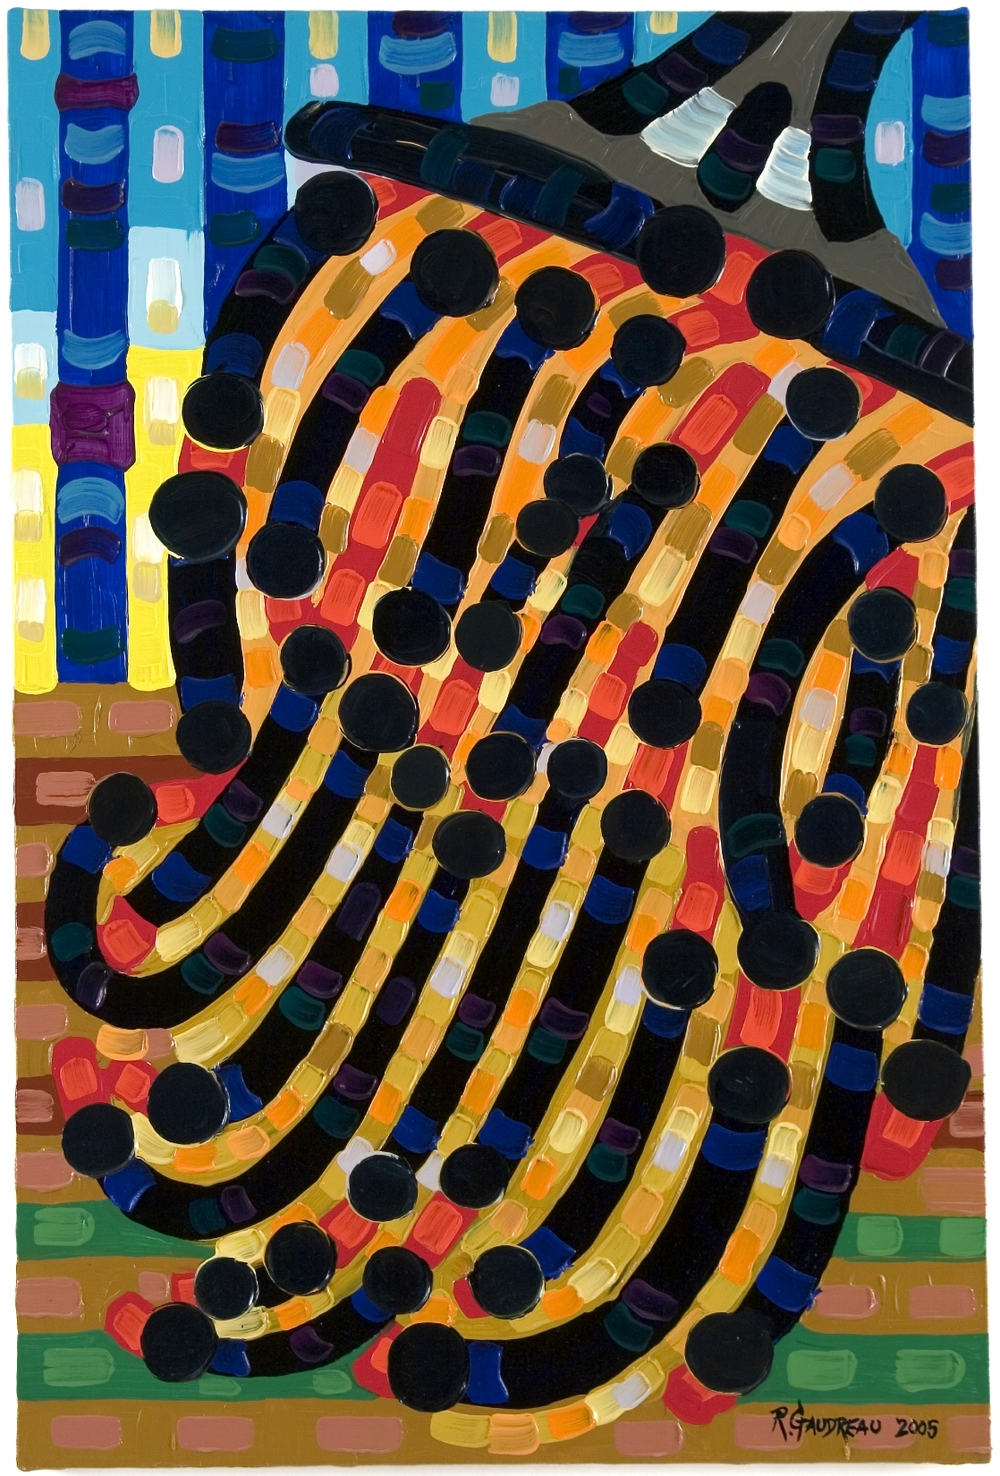 Brush     2005 oil on linen 36 x 24 inches